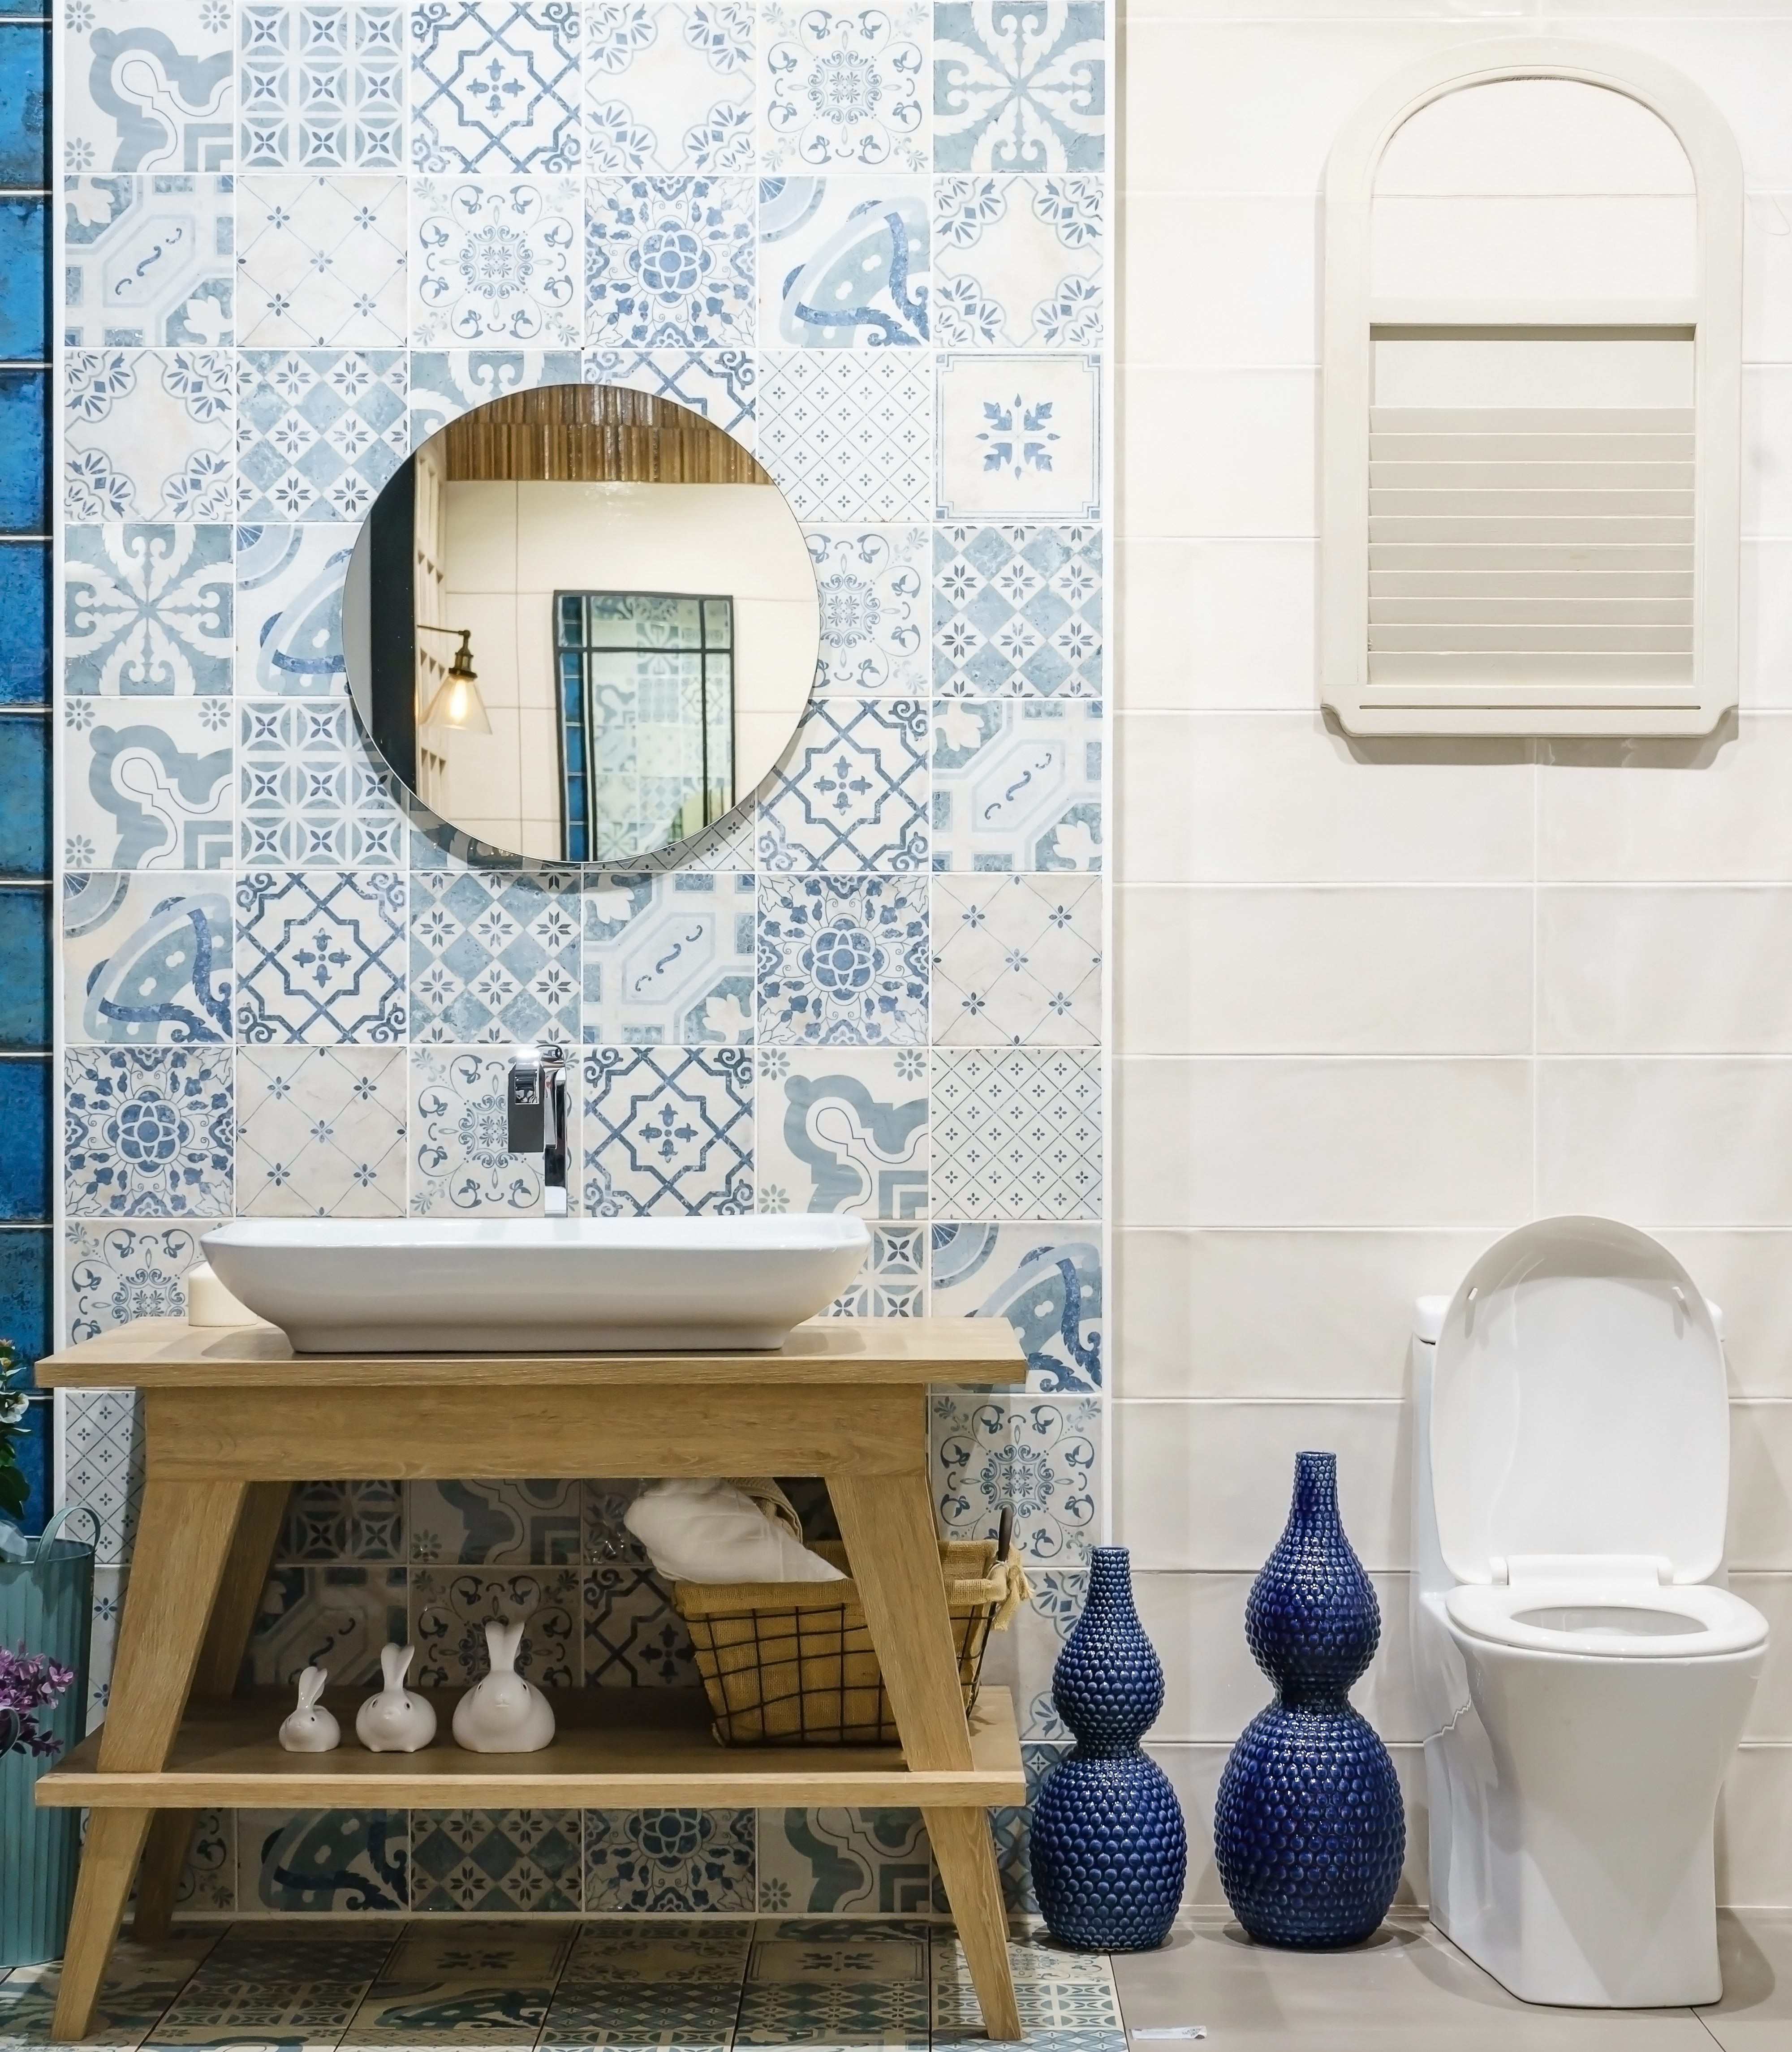 A Stunning Tile Feature Wall